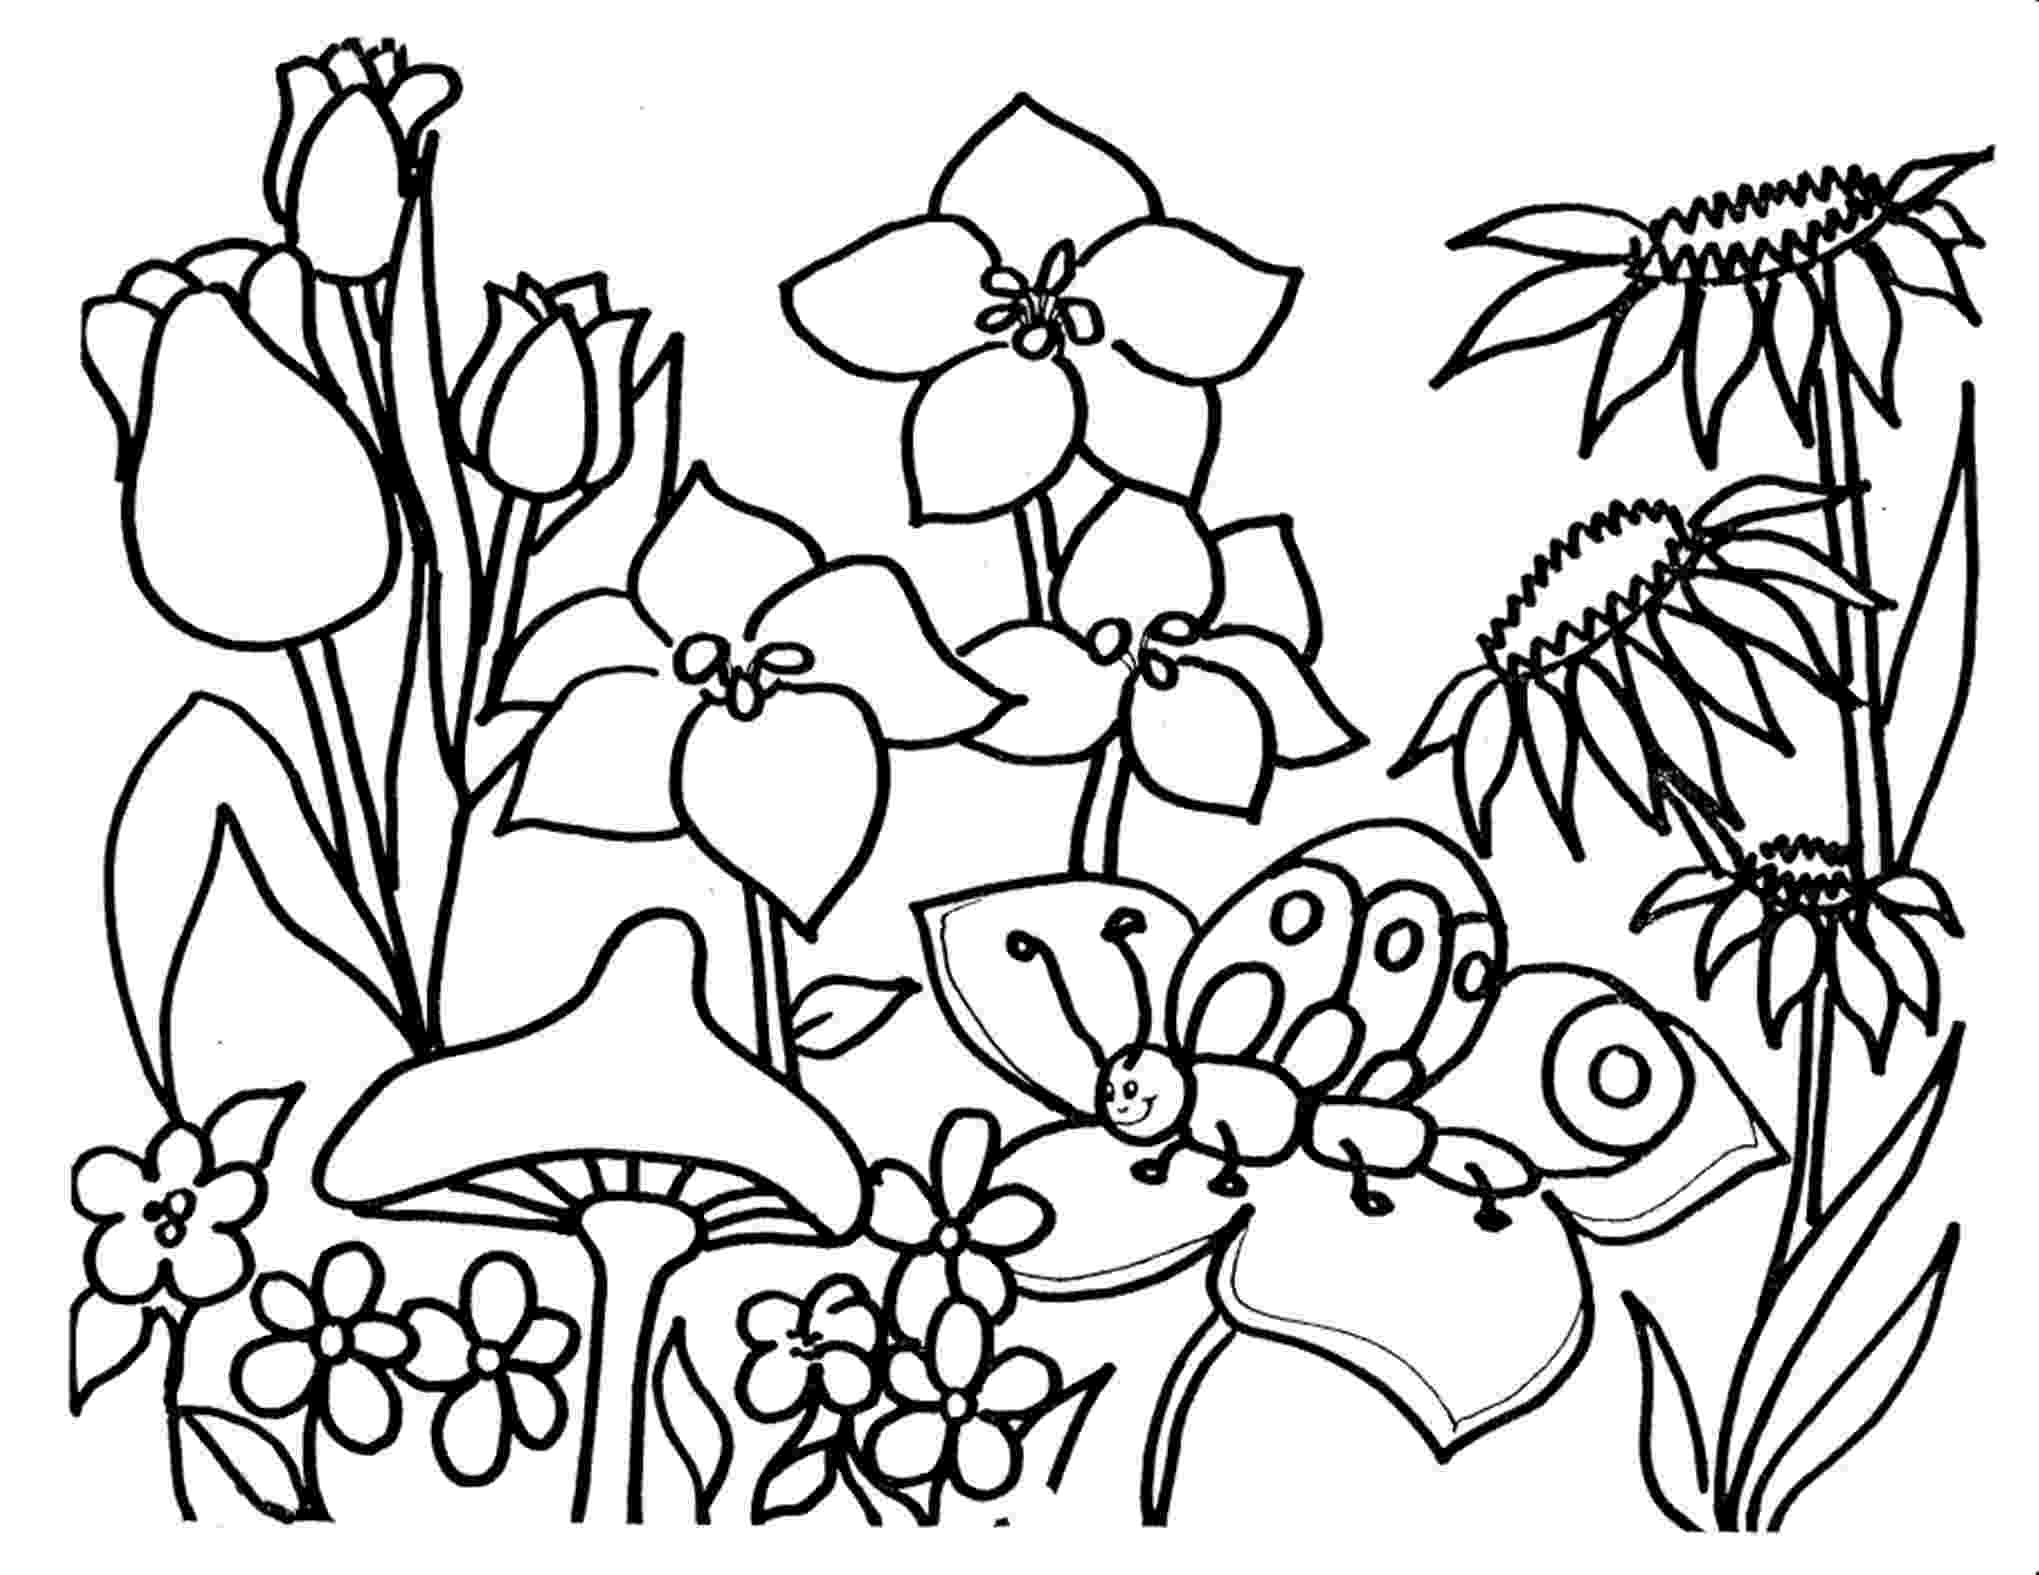 flower coloring sheets for kids free printable flower coloring pages for kids best sheets kids for coloring flower